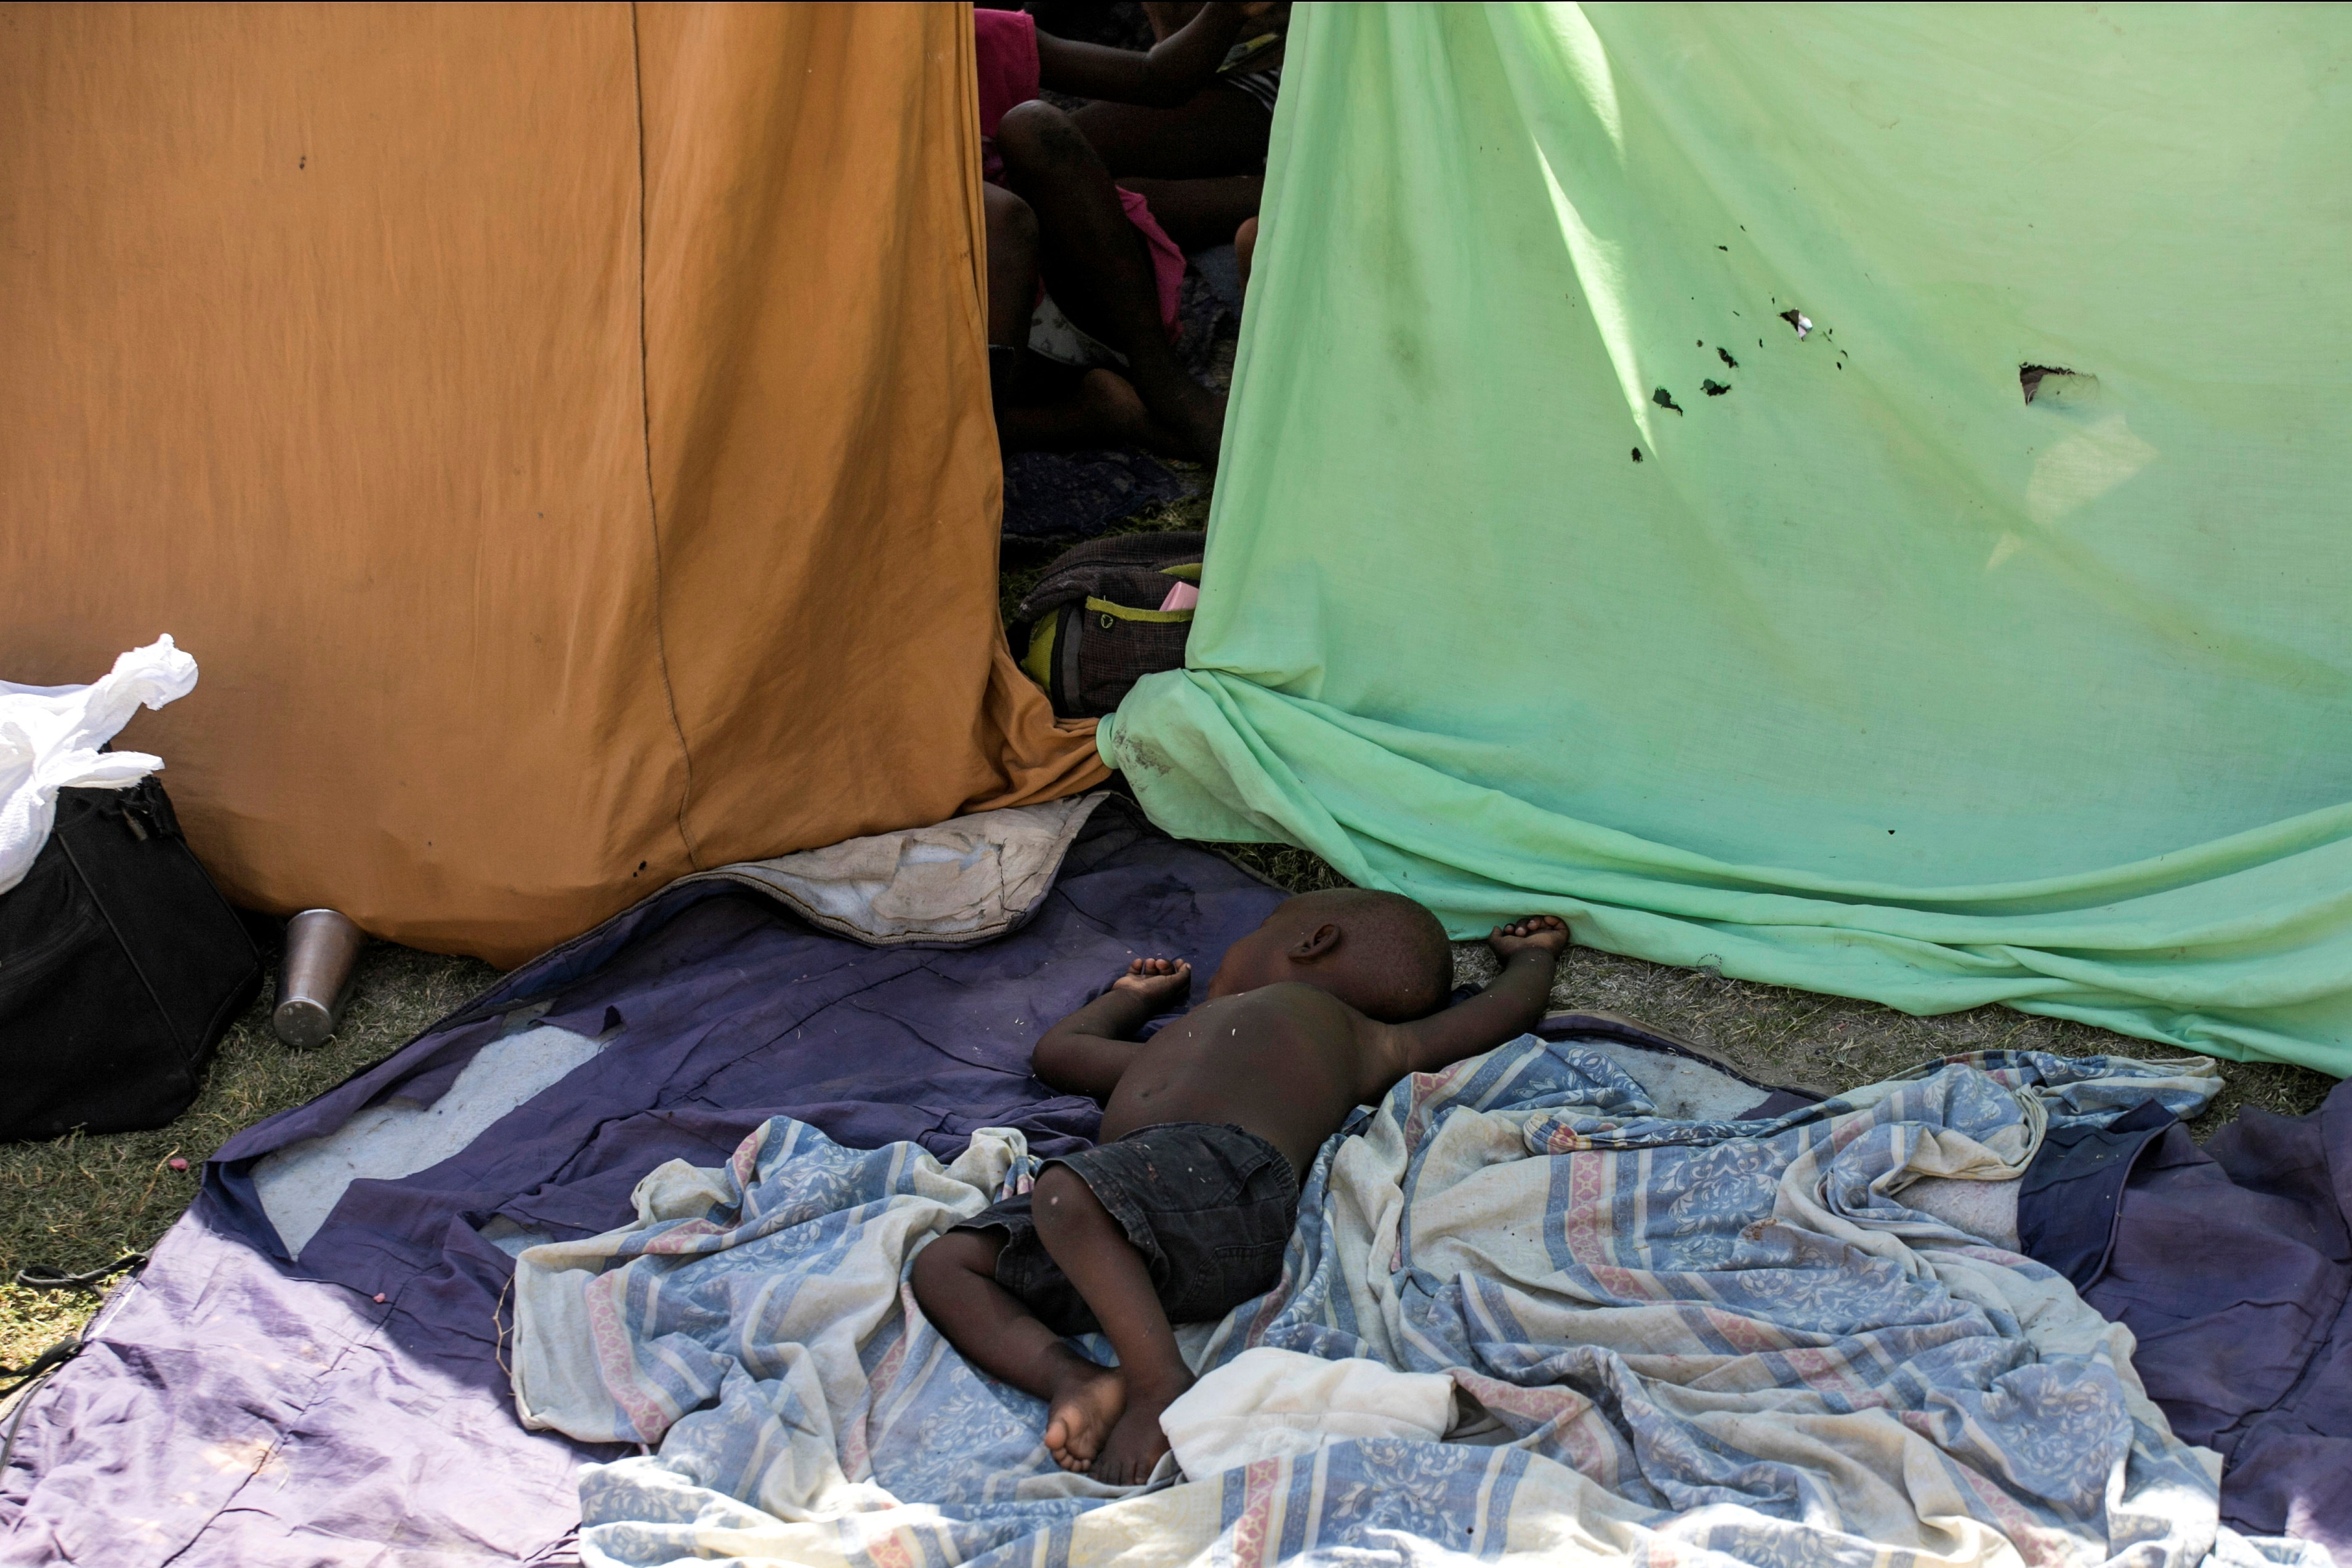 A child lies on blankets at an encampment set up on a soccer field after Saturday's 7.2 magnitude quake, in Les Cayes, Haiti August 16, 2021. REUTERS/Ralph Tedy Erol